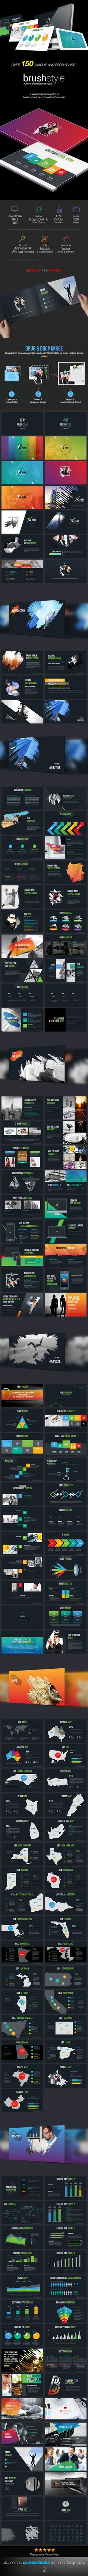 Brush Style Business Plan PowerPoint Presentation Template